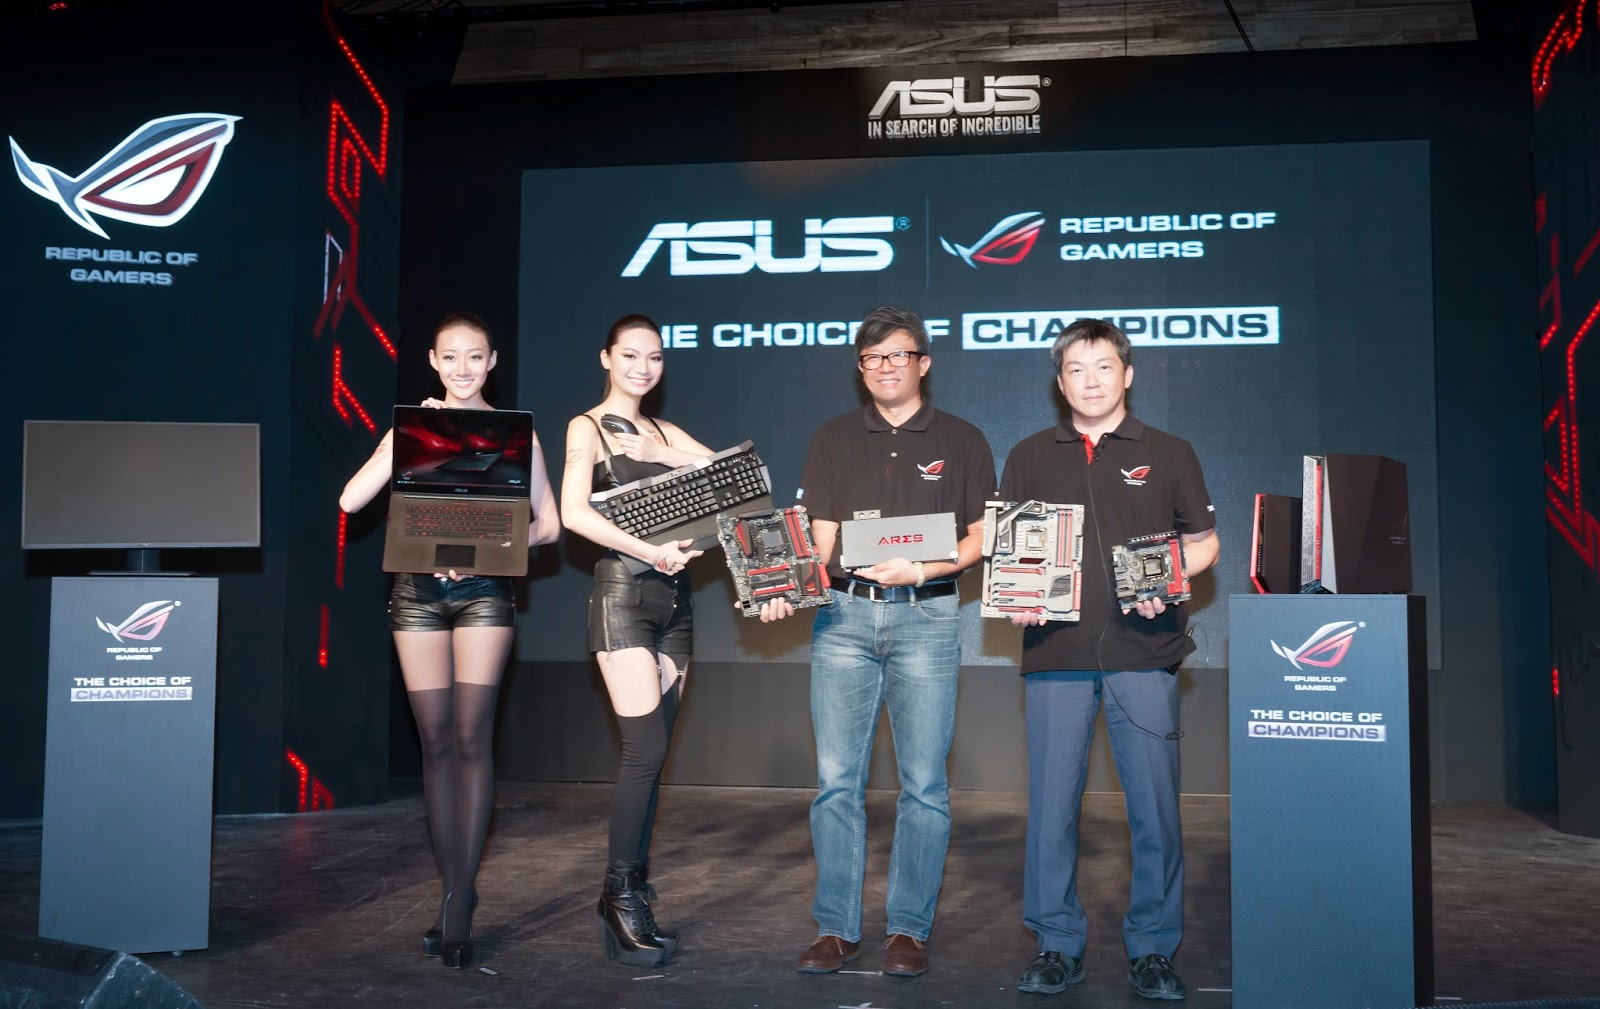 Joe Hsieh, ASUS Corporate VP and GM of Motherboard and Desktop System Business Unit and Jackie Hsu, ASUS Corporate VP and GM of Worldwide Sales, present ROG products